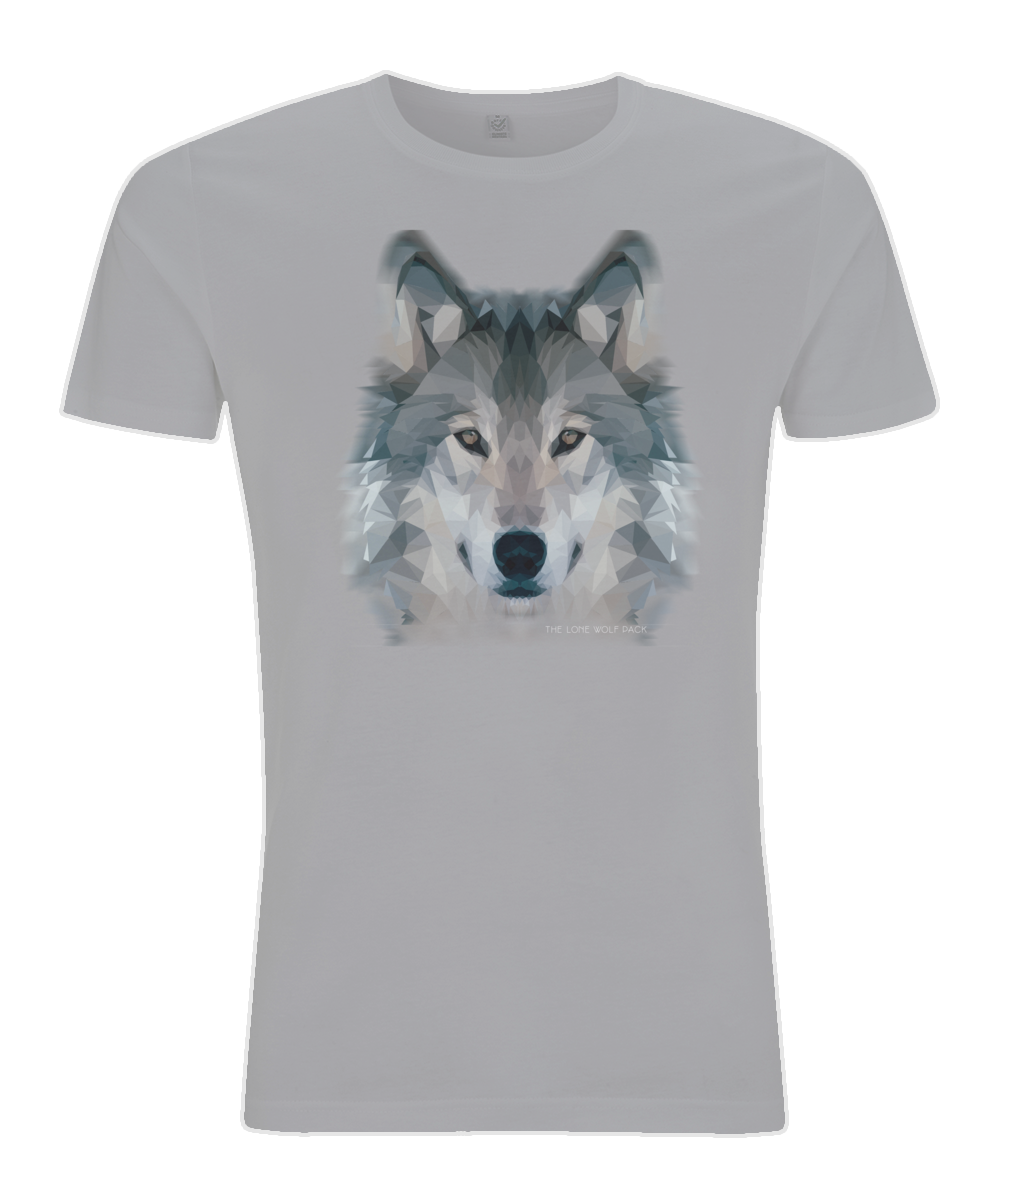 Wolf Men's Grey T-shirt